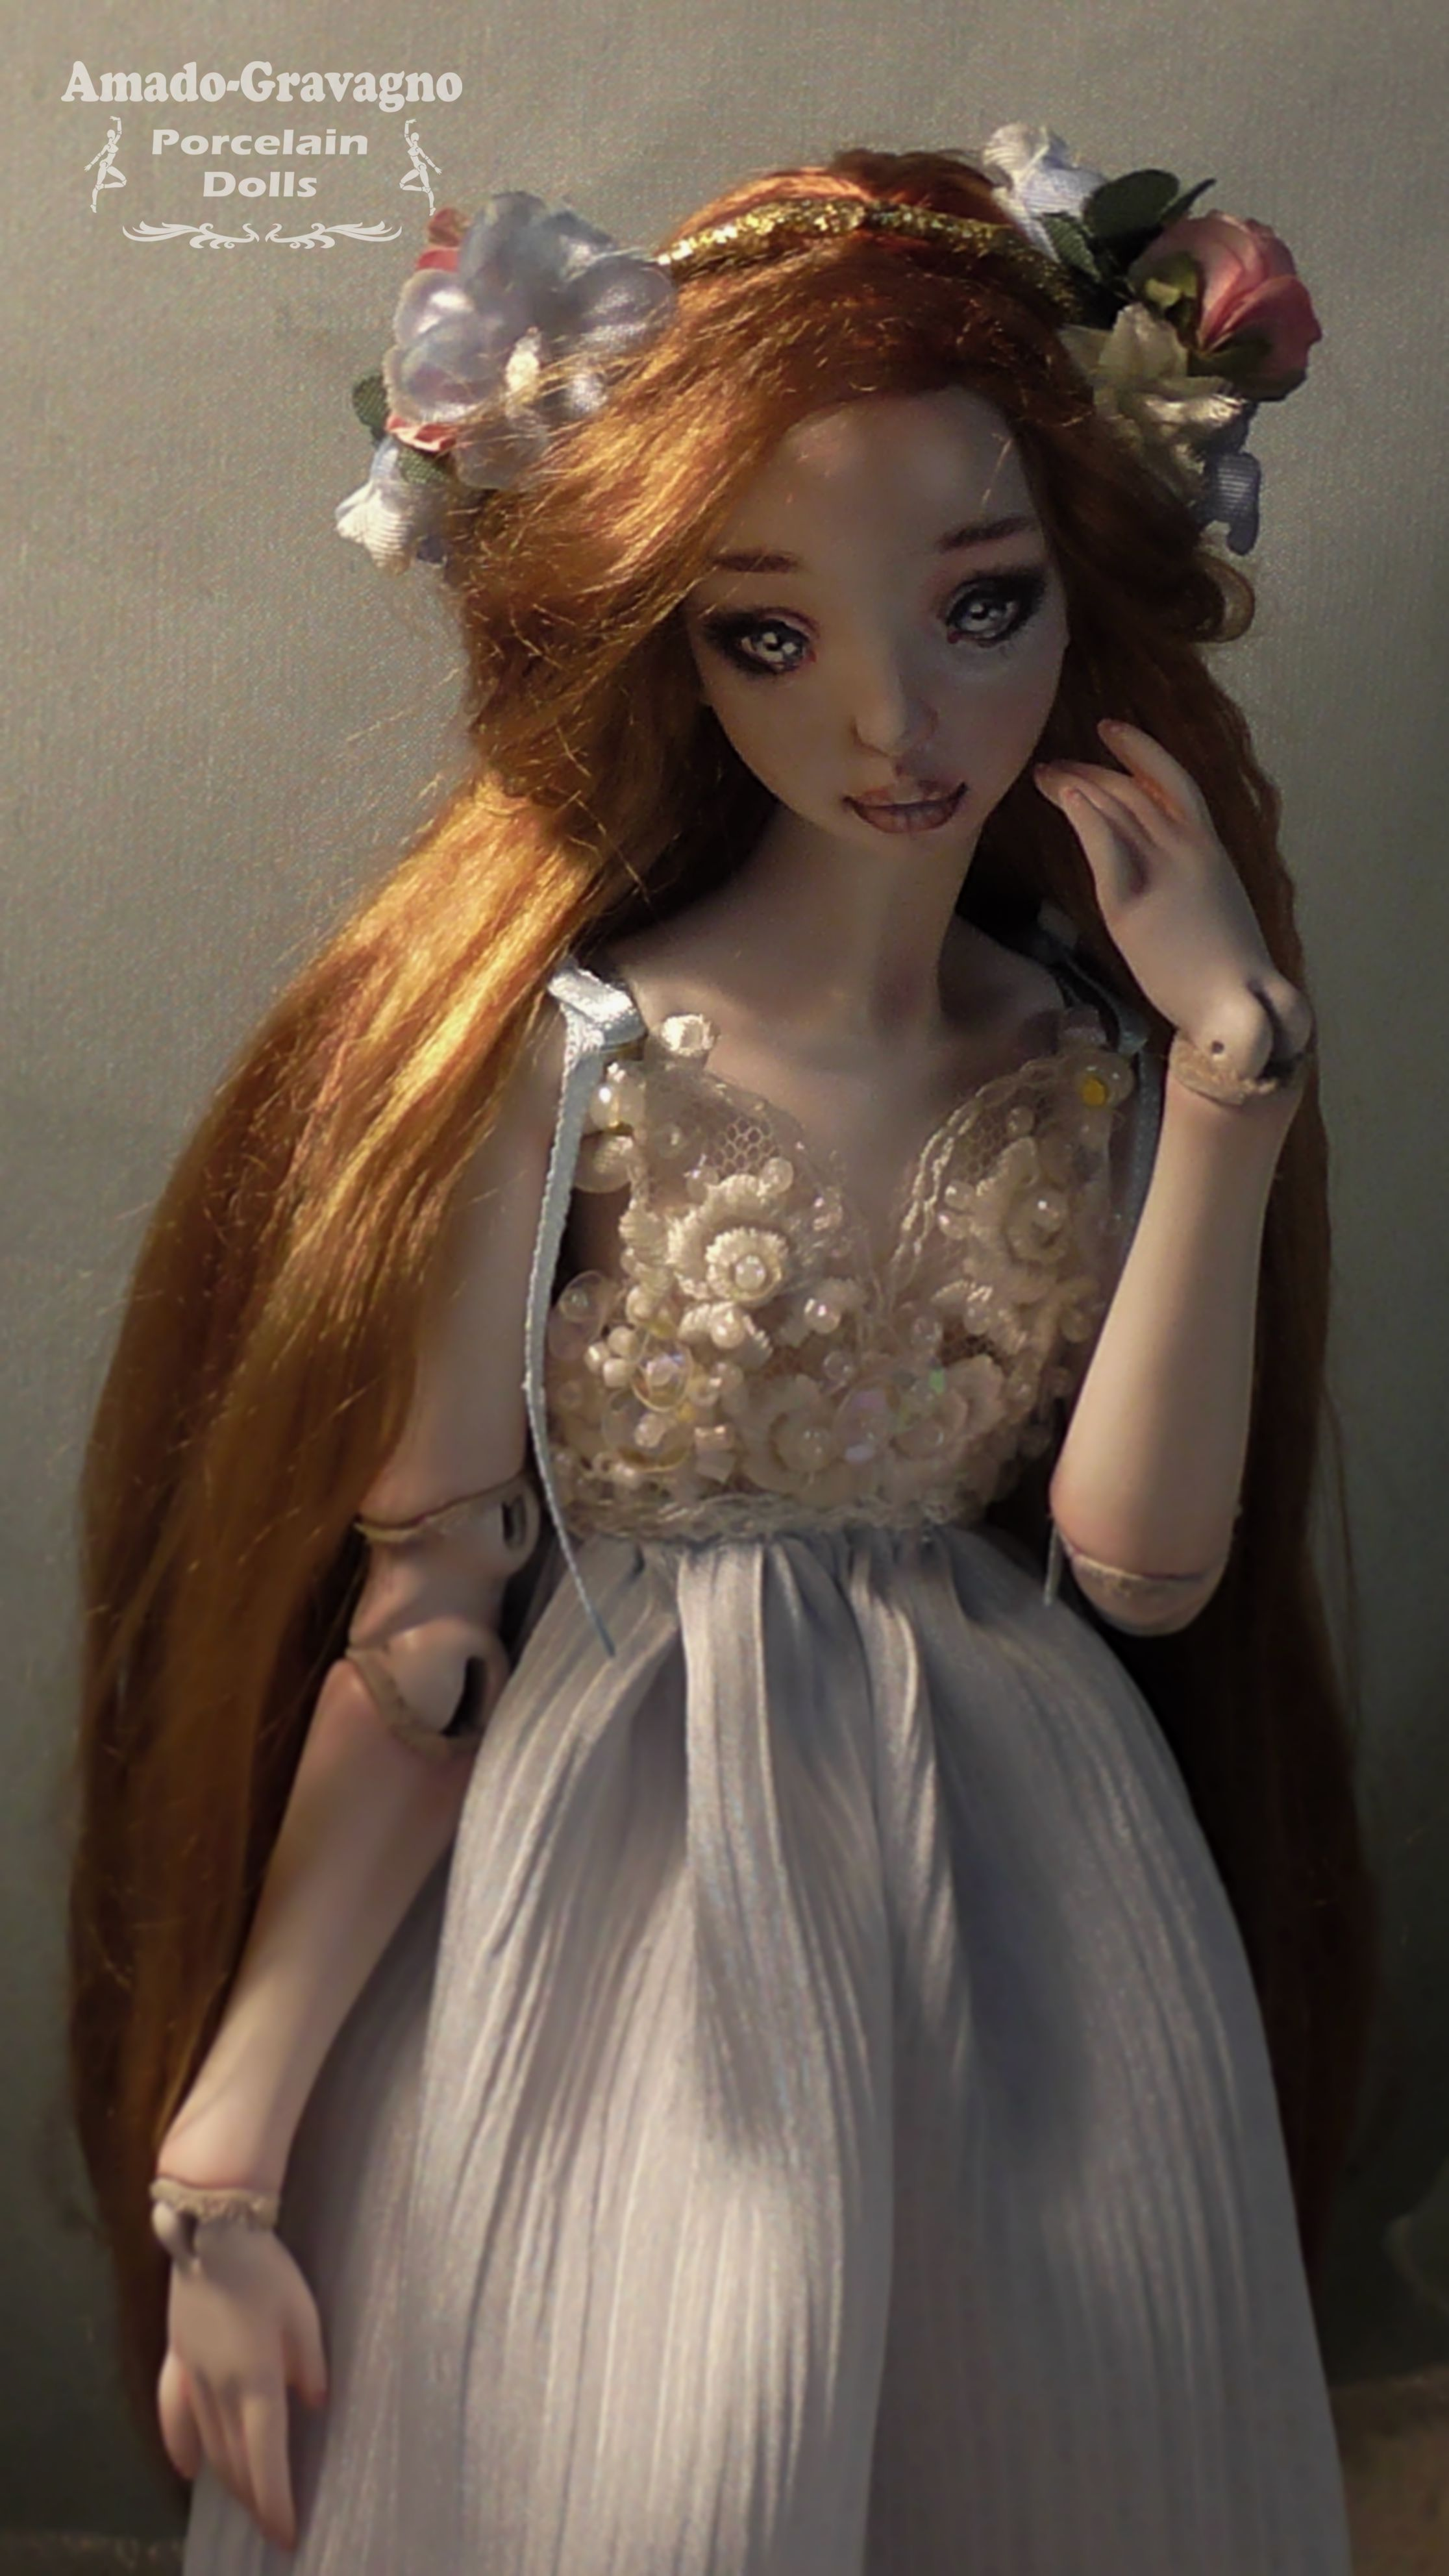 Captivating Fairytale Dolls Made In Porcelain That Can Fit In Your Hand And Will Stay In Your Heart Forever!